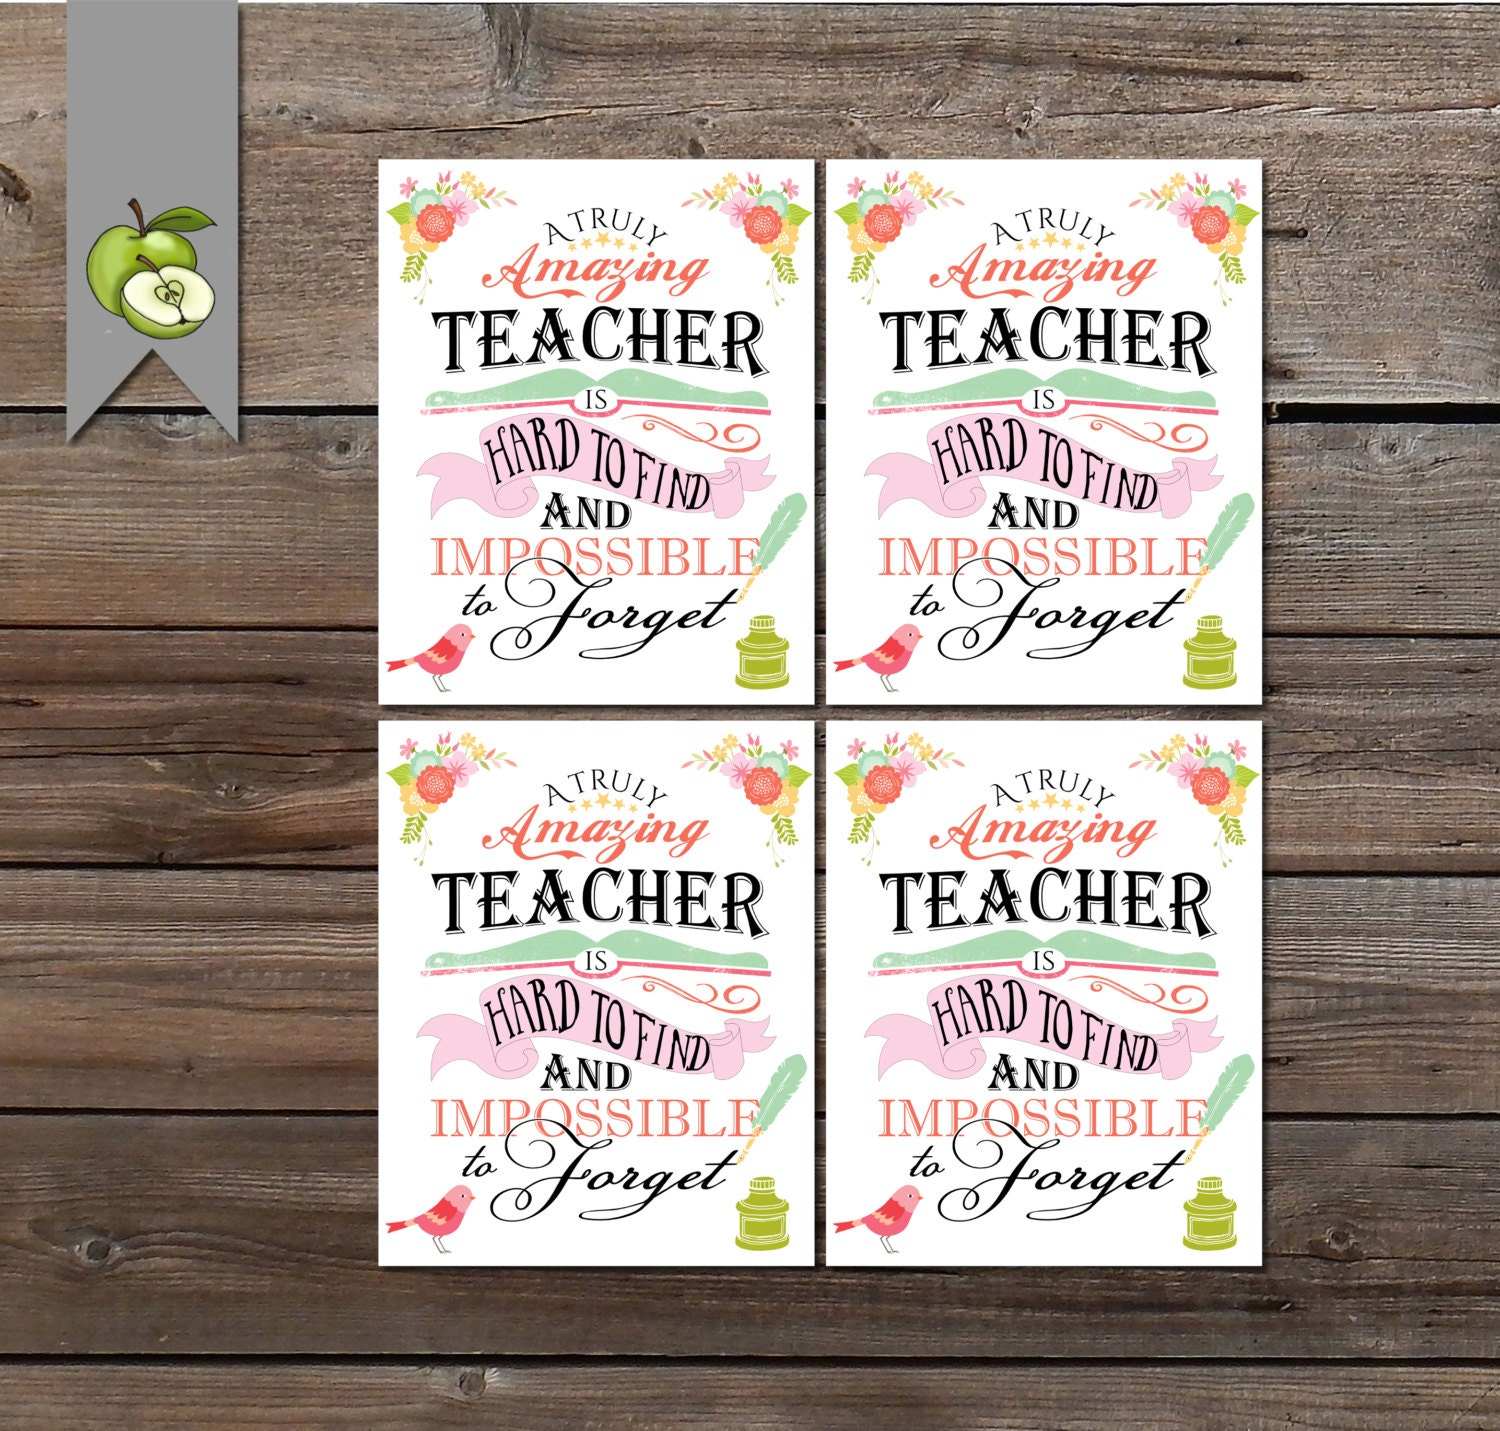 Teacher Appreciation Gift Tag a truly amazing Teacher Gift